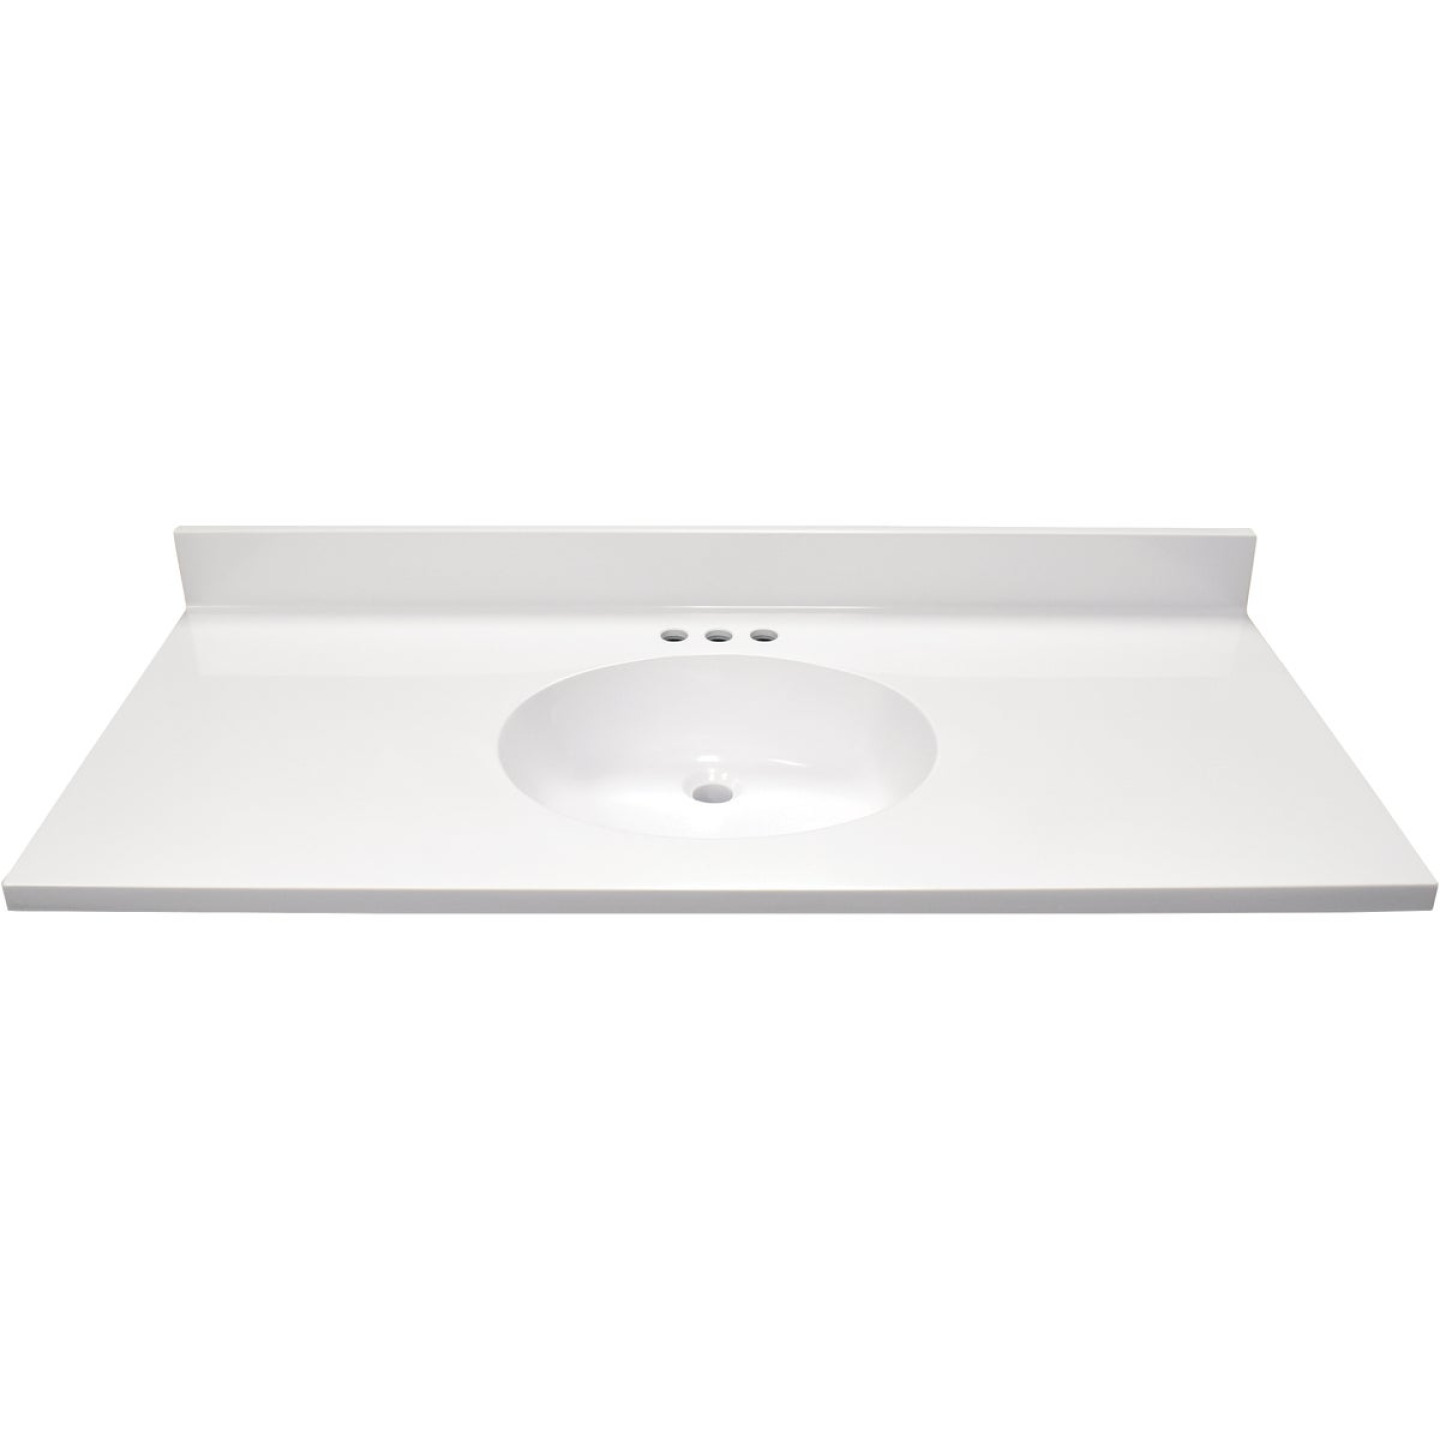 Modular Vanity Tops 49 In. W x 22 In. D Solid White Cultured Marble Flat Edge Vanity Top with Oval Bowl Image 2